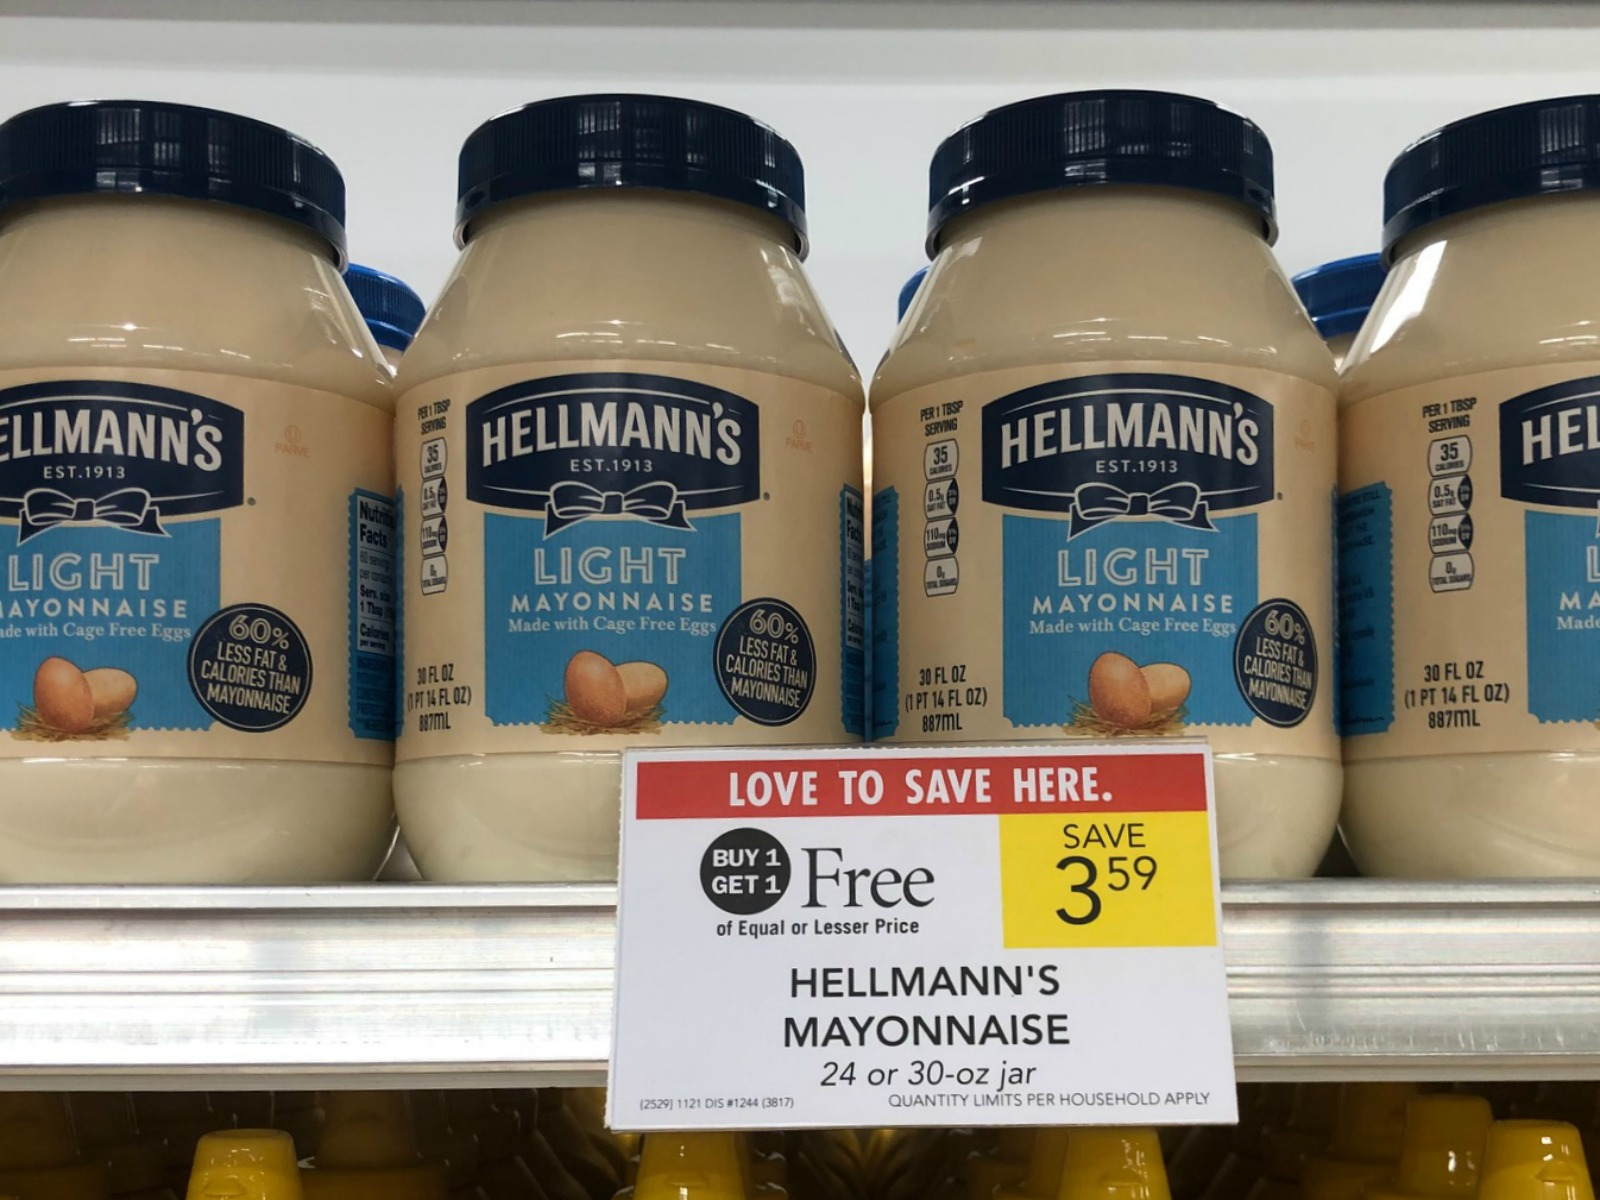 Free Hellmann's Mayonnaise For Some At Publix on I Heart Publix